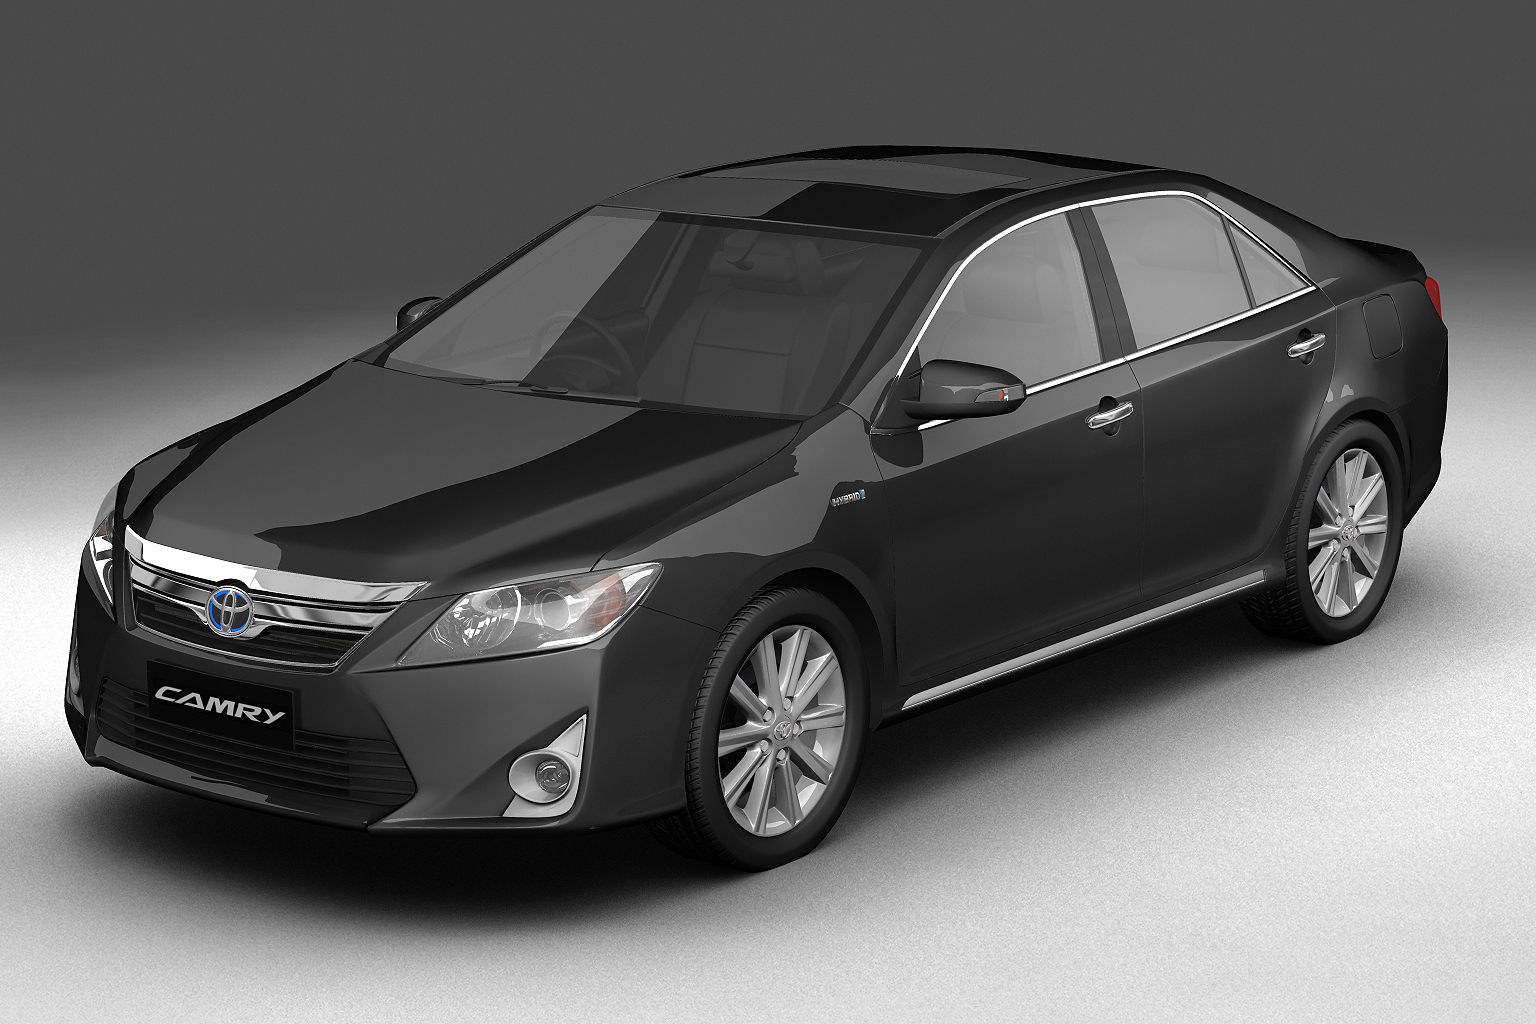 2012 toyota camry hybrid asian 3d model buy 2012 toyota camry hybrid asian 3d model. Black Bedroom Furniture Sets. Home Design Ideas